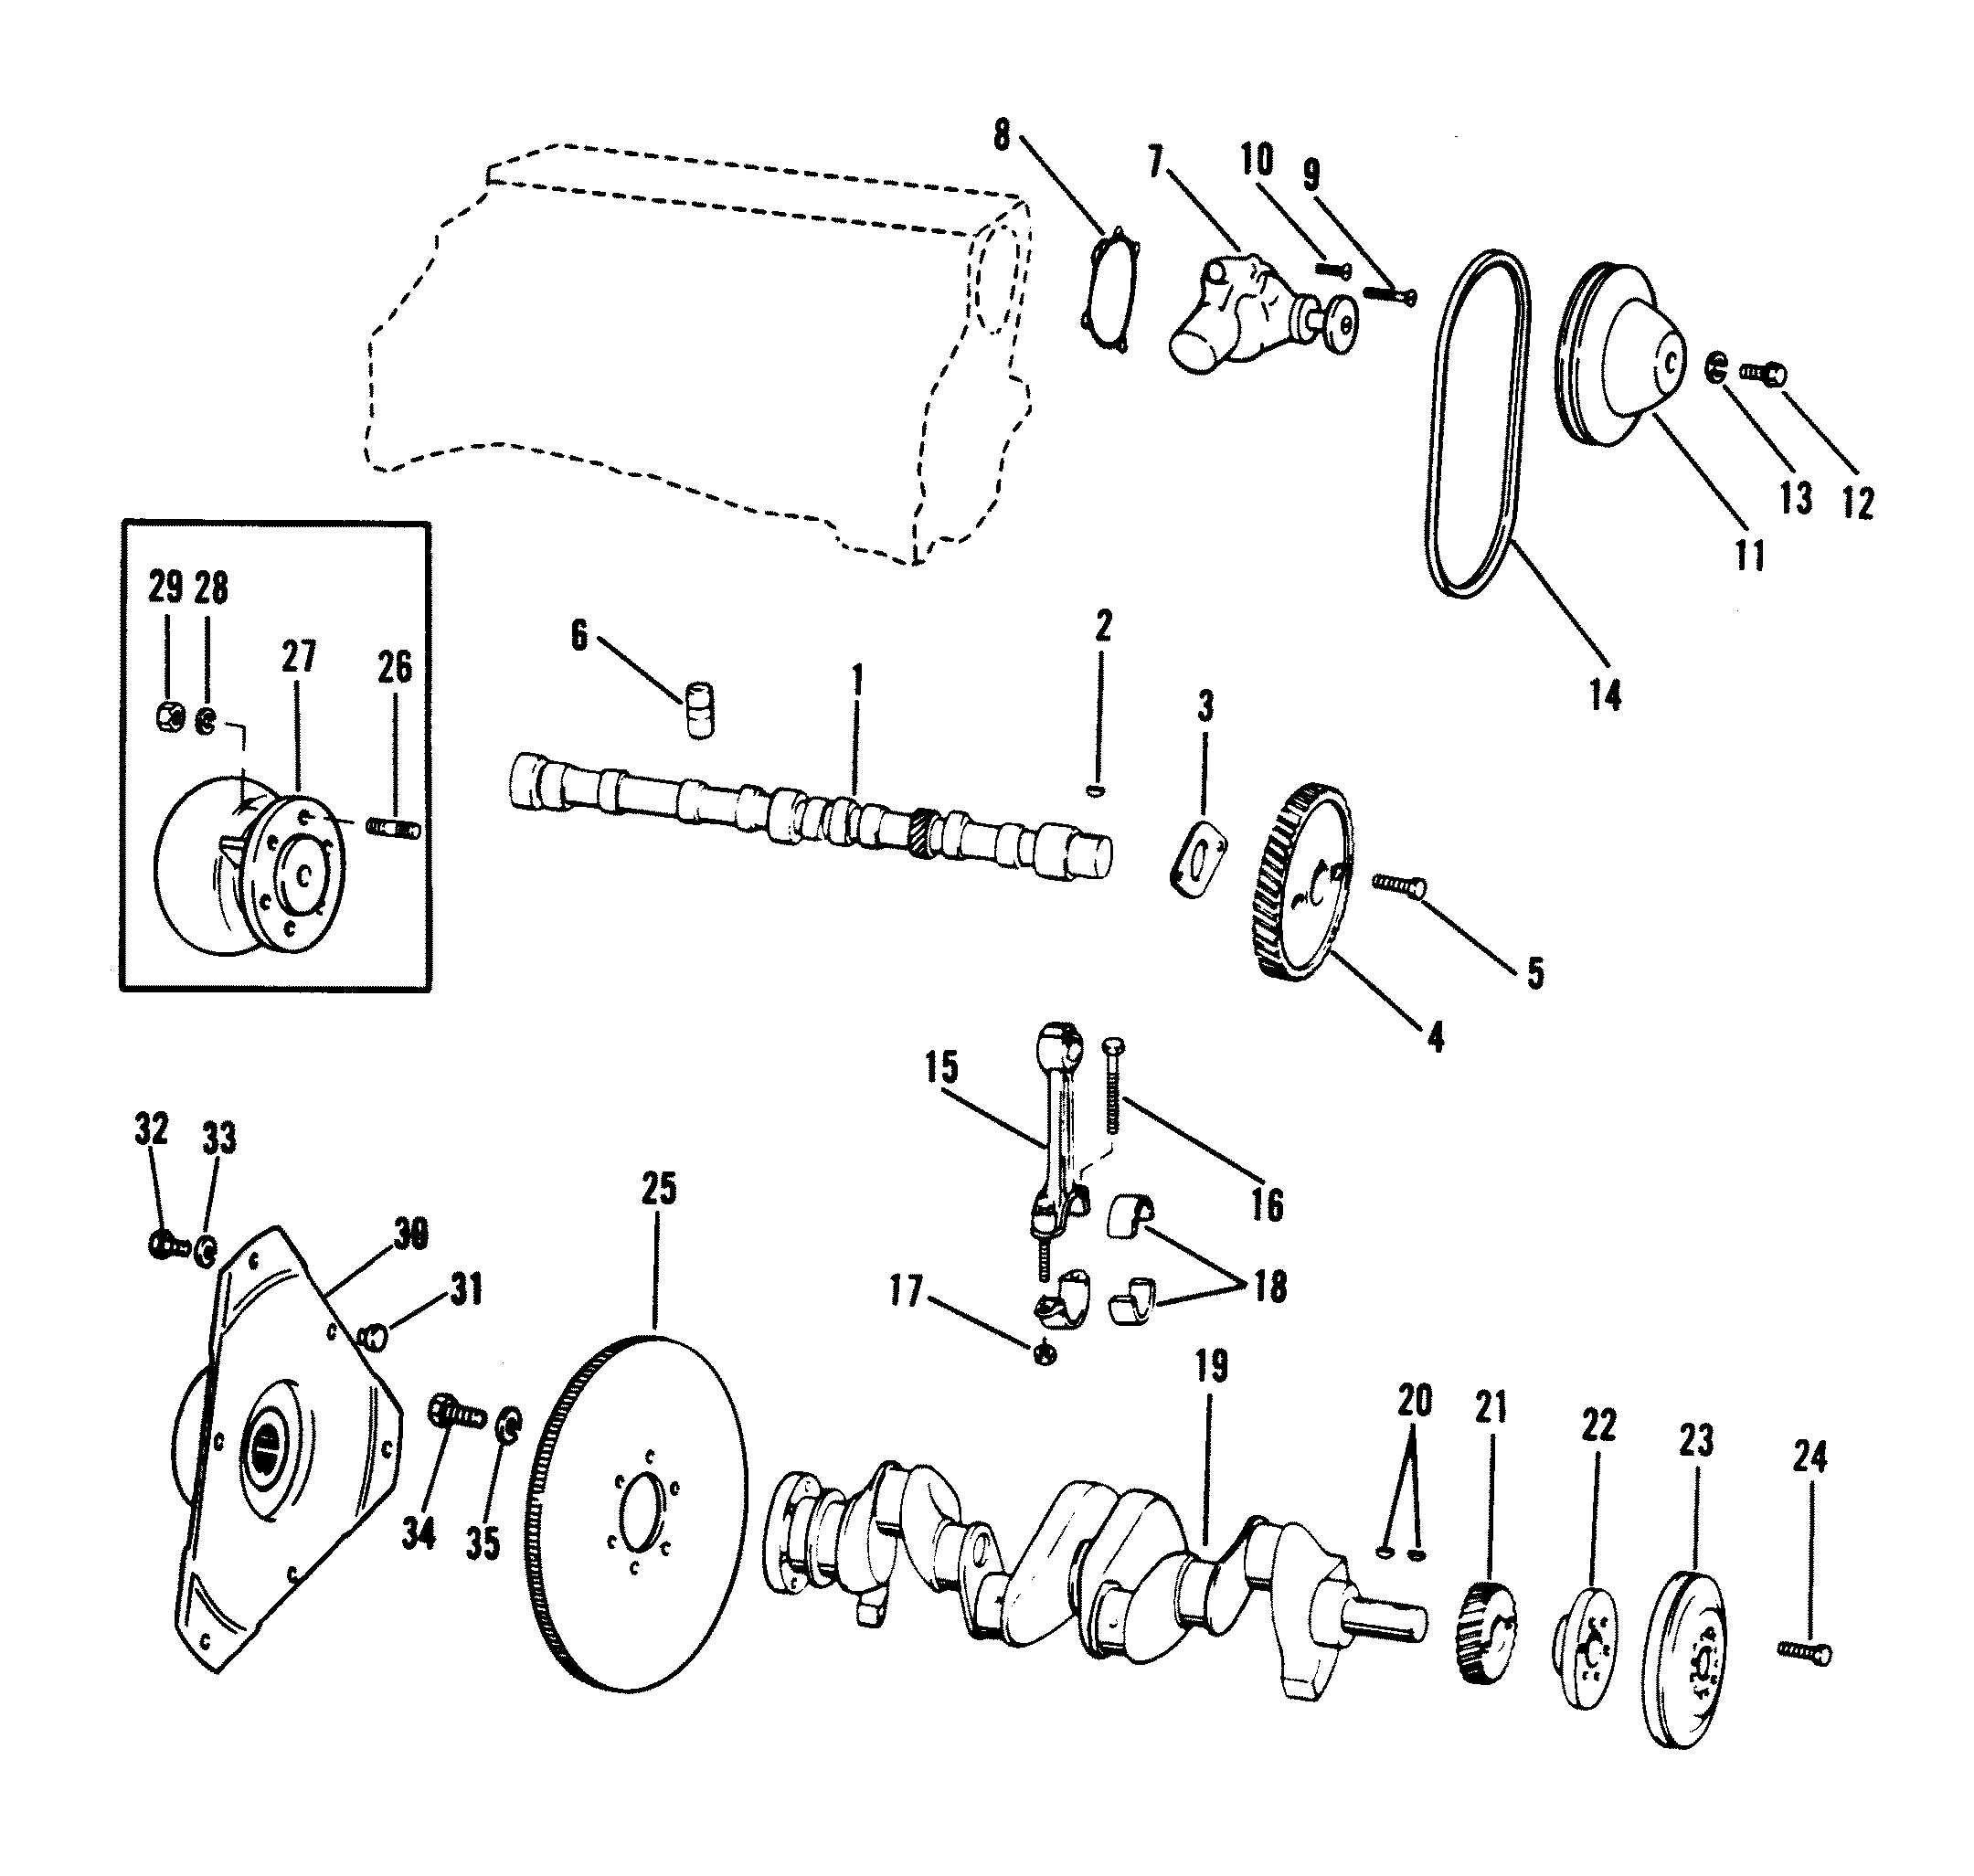 Prd2288 besides 2805 together with Tobacco Seedling Diagram together with Chevy Small Block Short Water Pump High Mount Ultra For Blower Ram Jet furthermore Alternator Wiring Diagram For 1991 22re. on 140 amp alternator gm